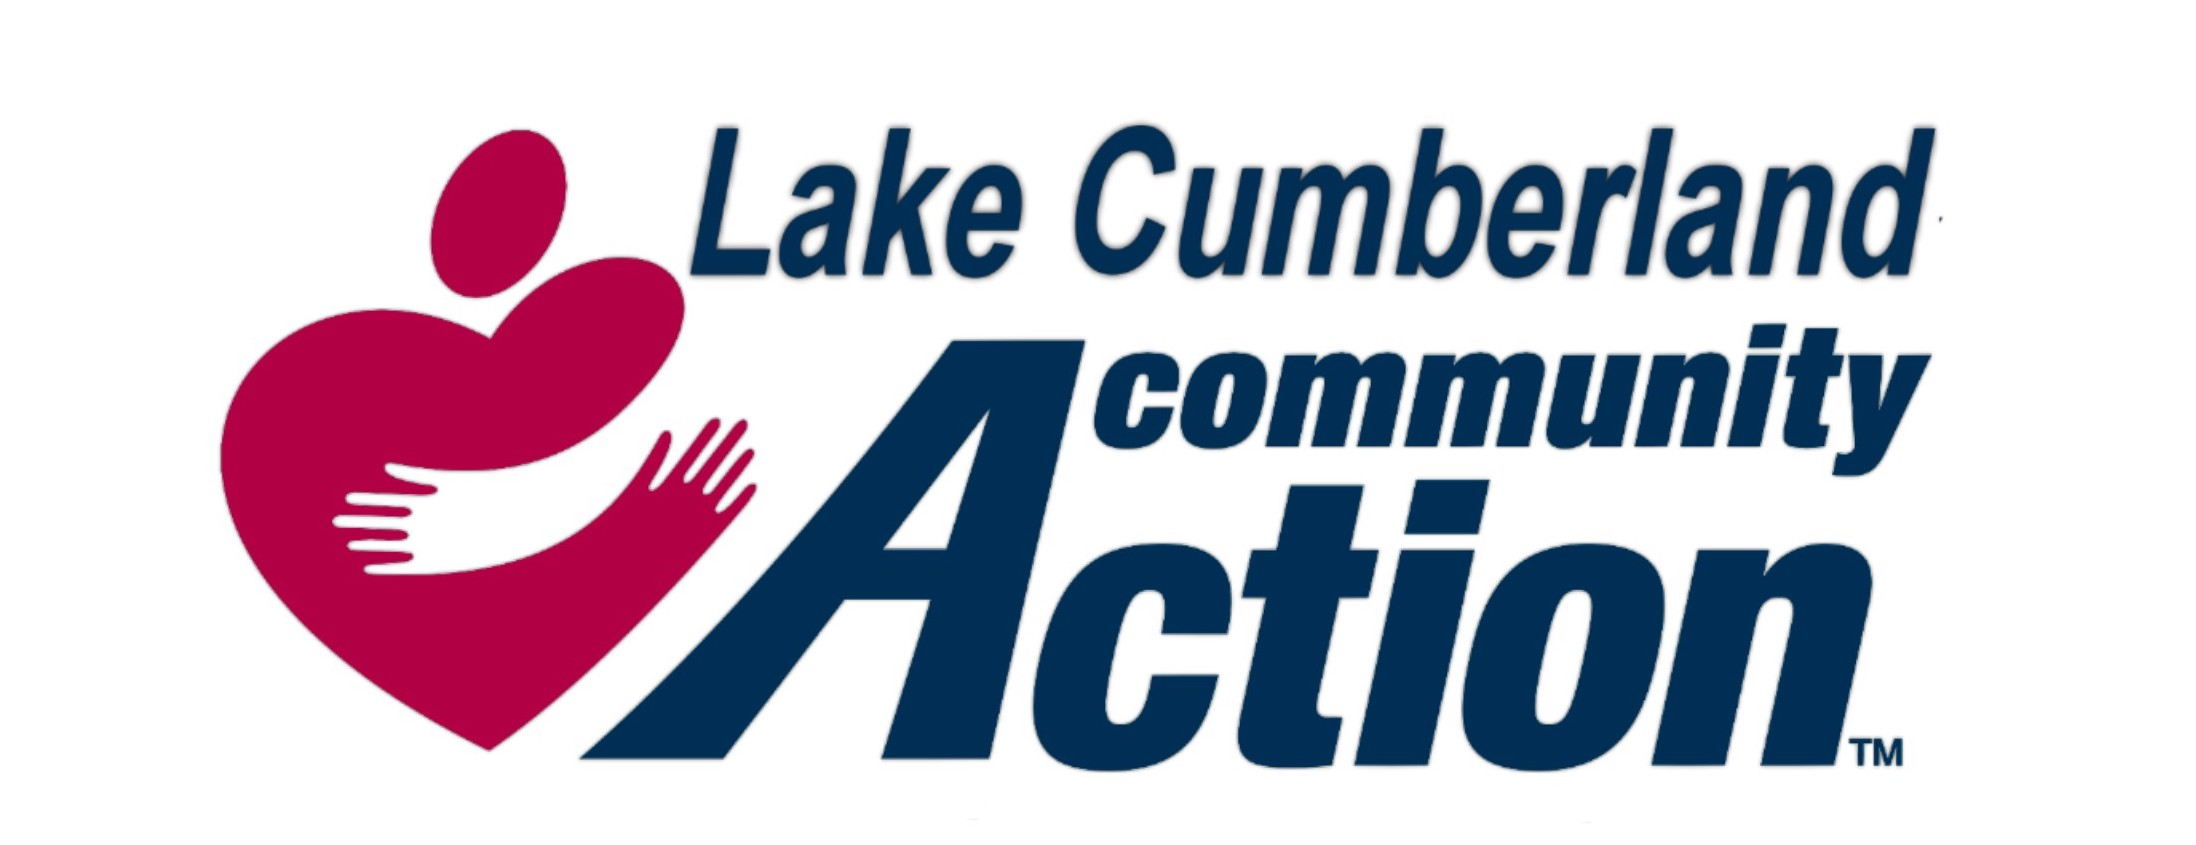 Lake Cumberland Community Action